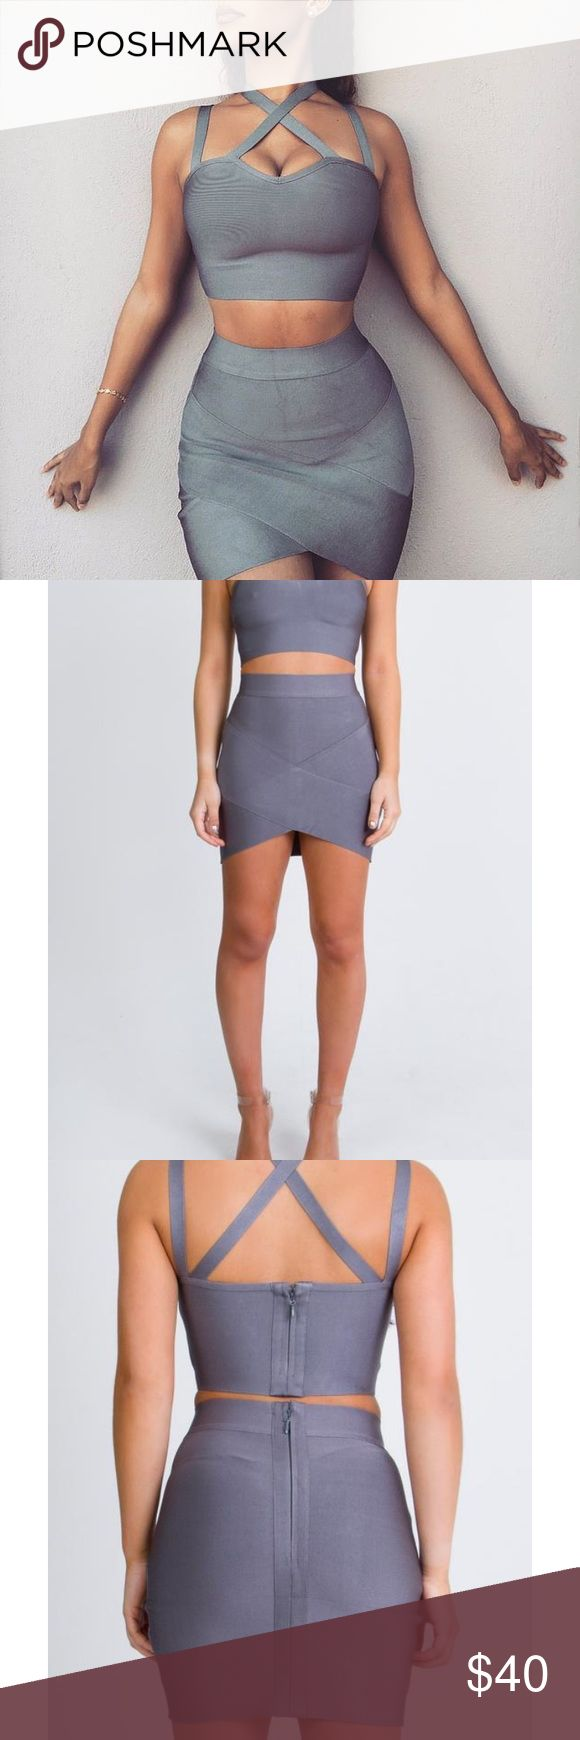 Bianca Slate Gray Bandage Skirt Brand new, never worn!! Best seller on the My Bandage Dress website/instagram and frequently SOLD OUT!! It's a UK size 10 which is a US 6-8 and it's made of a thick, high quality, flattering bandage material. I don't have the top. Retails for $45. Make me an offer! :) My Bandage Dress Skirts Mini